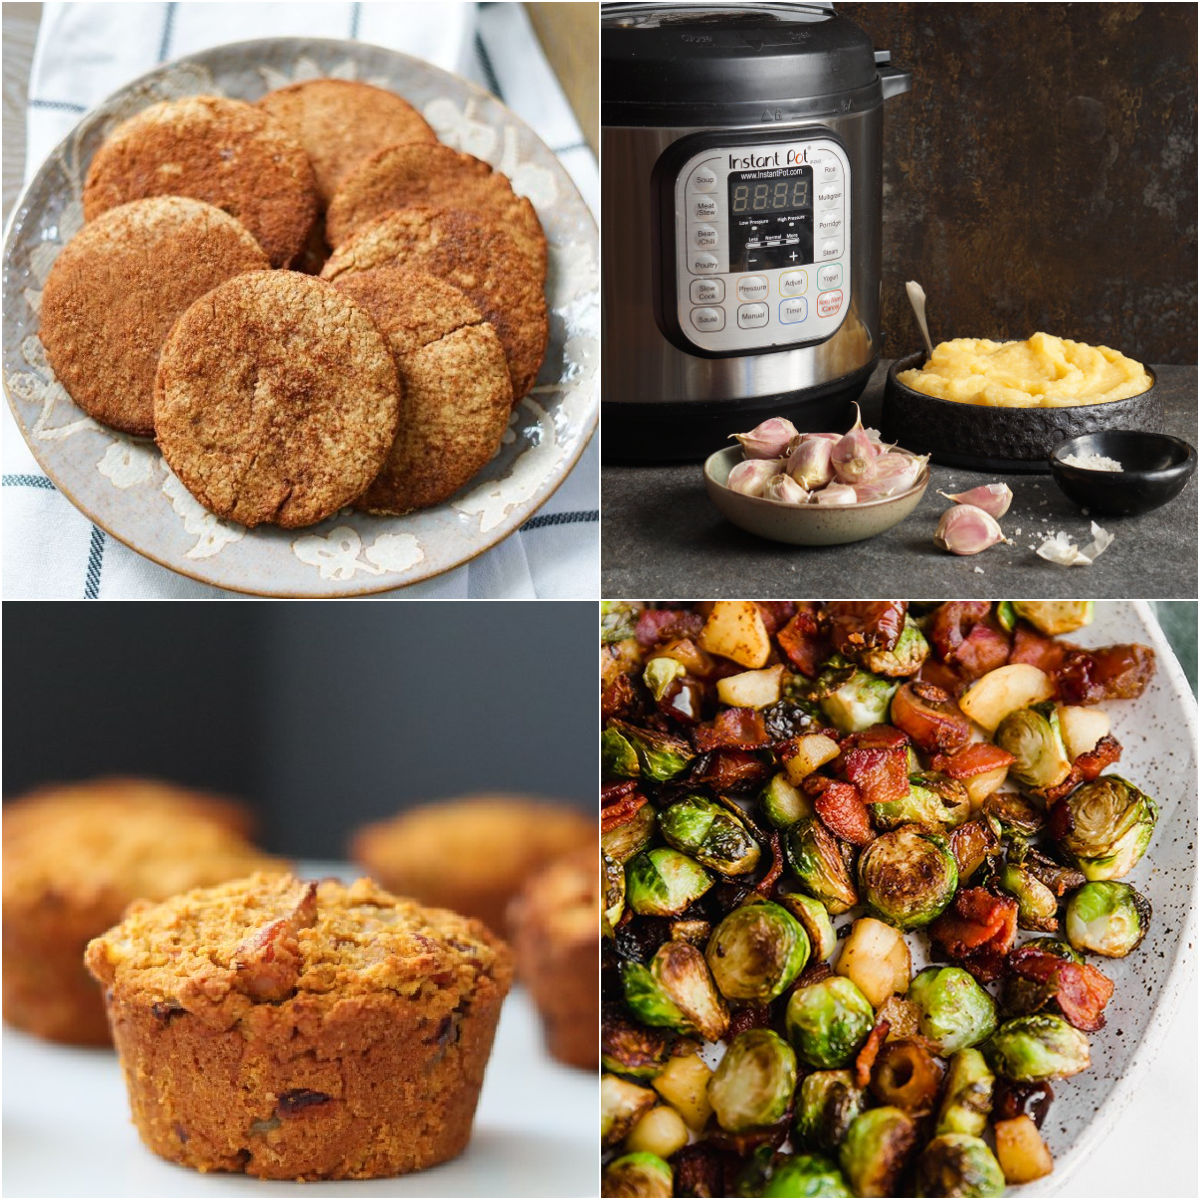 Paleo AIP Recipe Roundtable #344 | Phoenix Helix - *Featured Recipes: Snickerdoodle Cookies, Sweet Potato and Bacon Muffins, Instant Pot Garlicky Mashed Rutabaga, and Bacon, Date, & Apple Brussels Sprout Skillet.